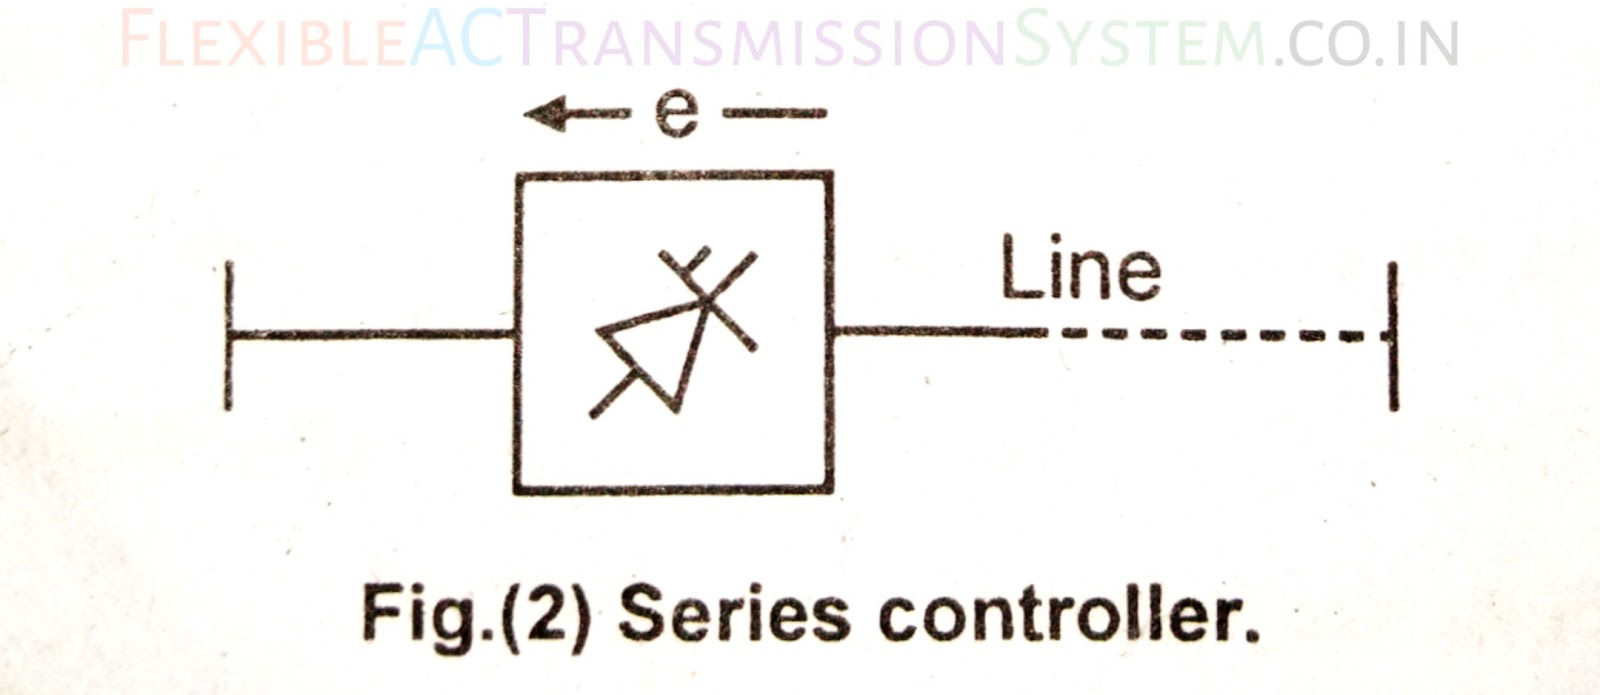 small resolution of the series controller could be a variable impedance such as a capacitor reactor etc or a power electronics based variable source of main frequency